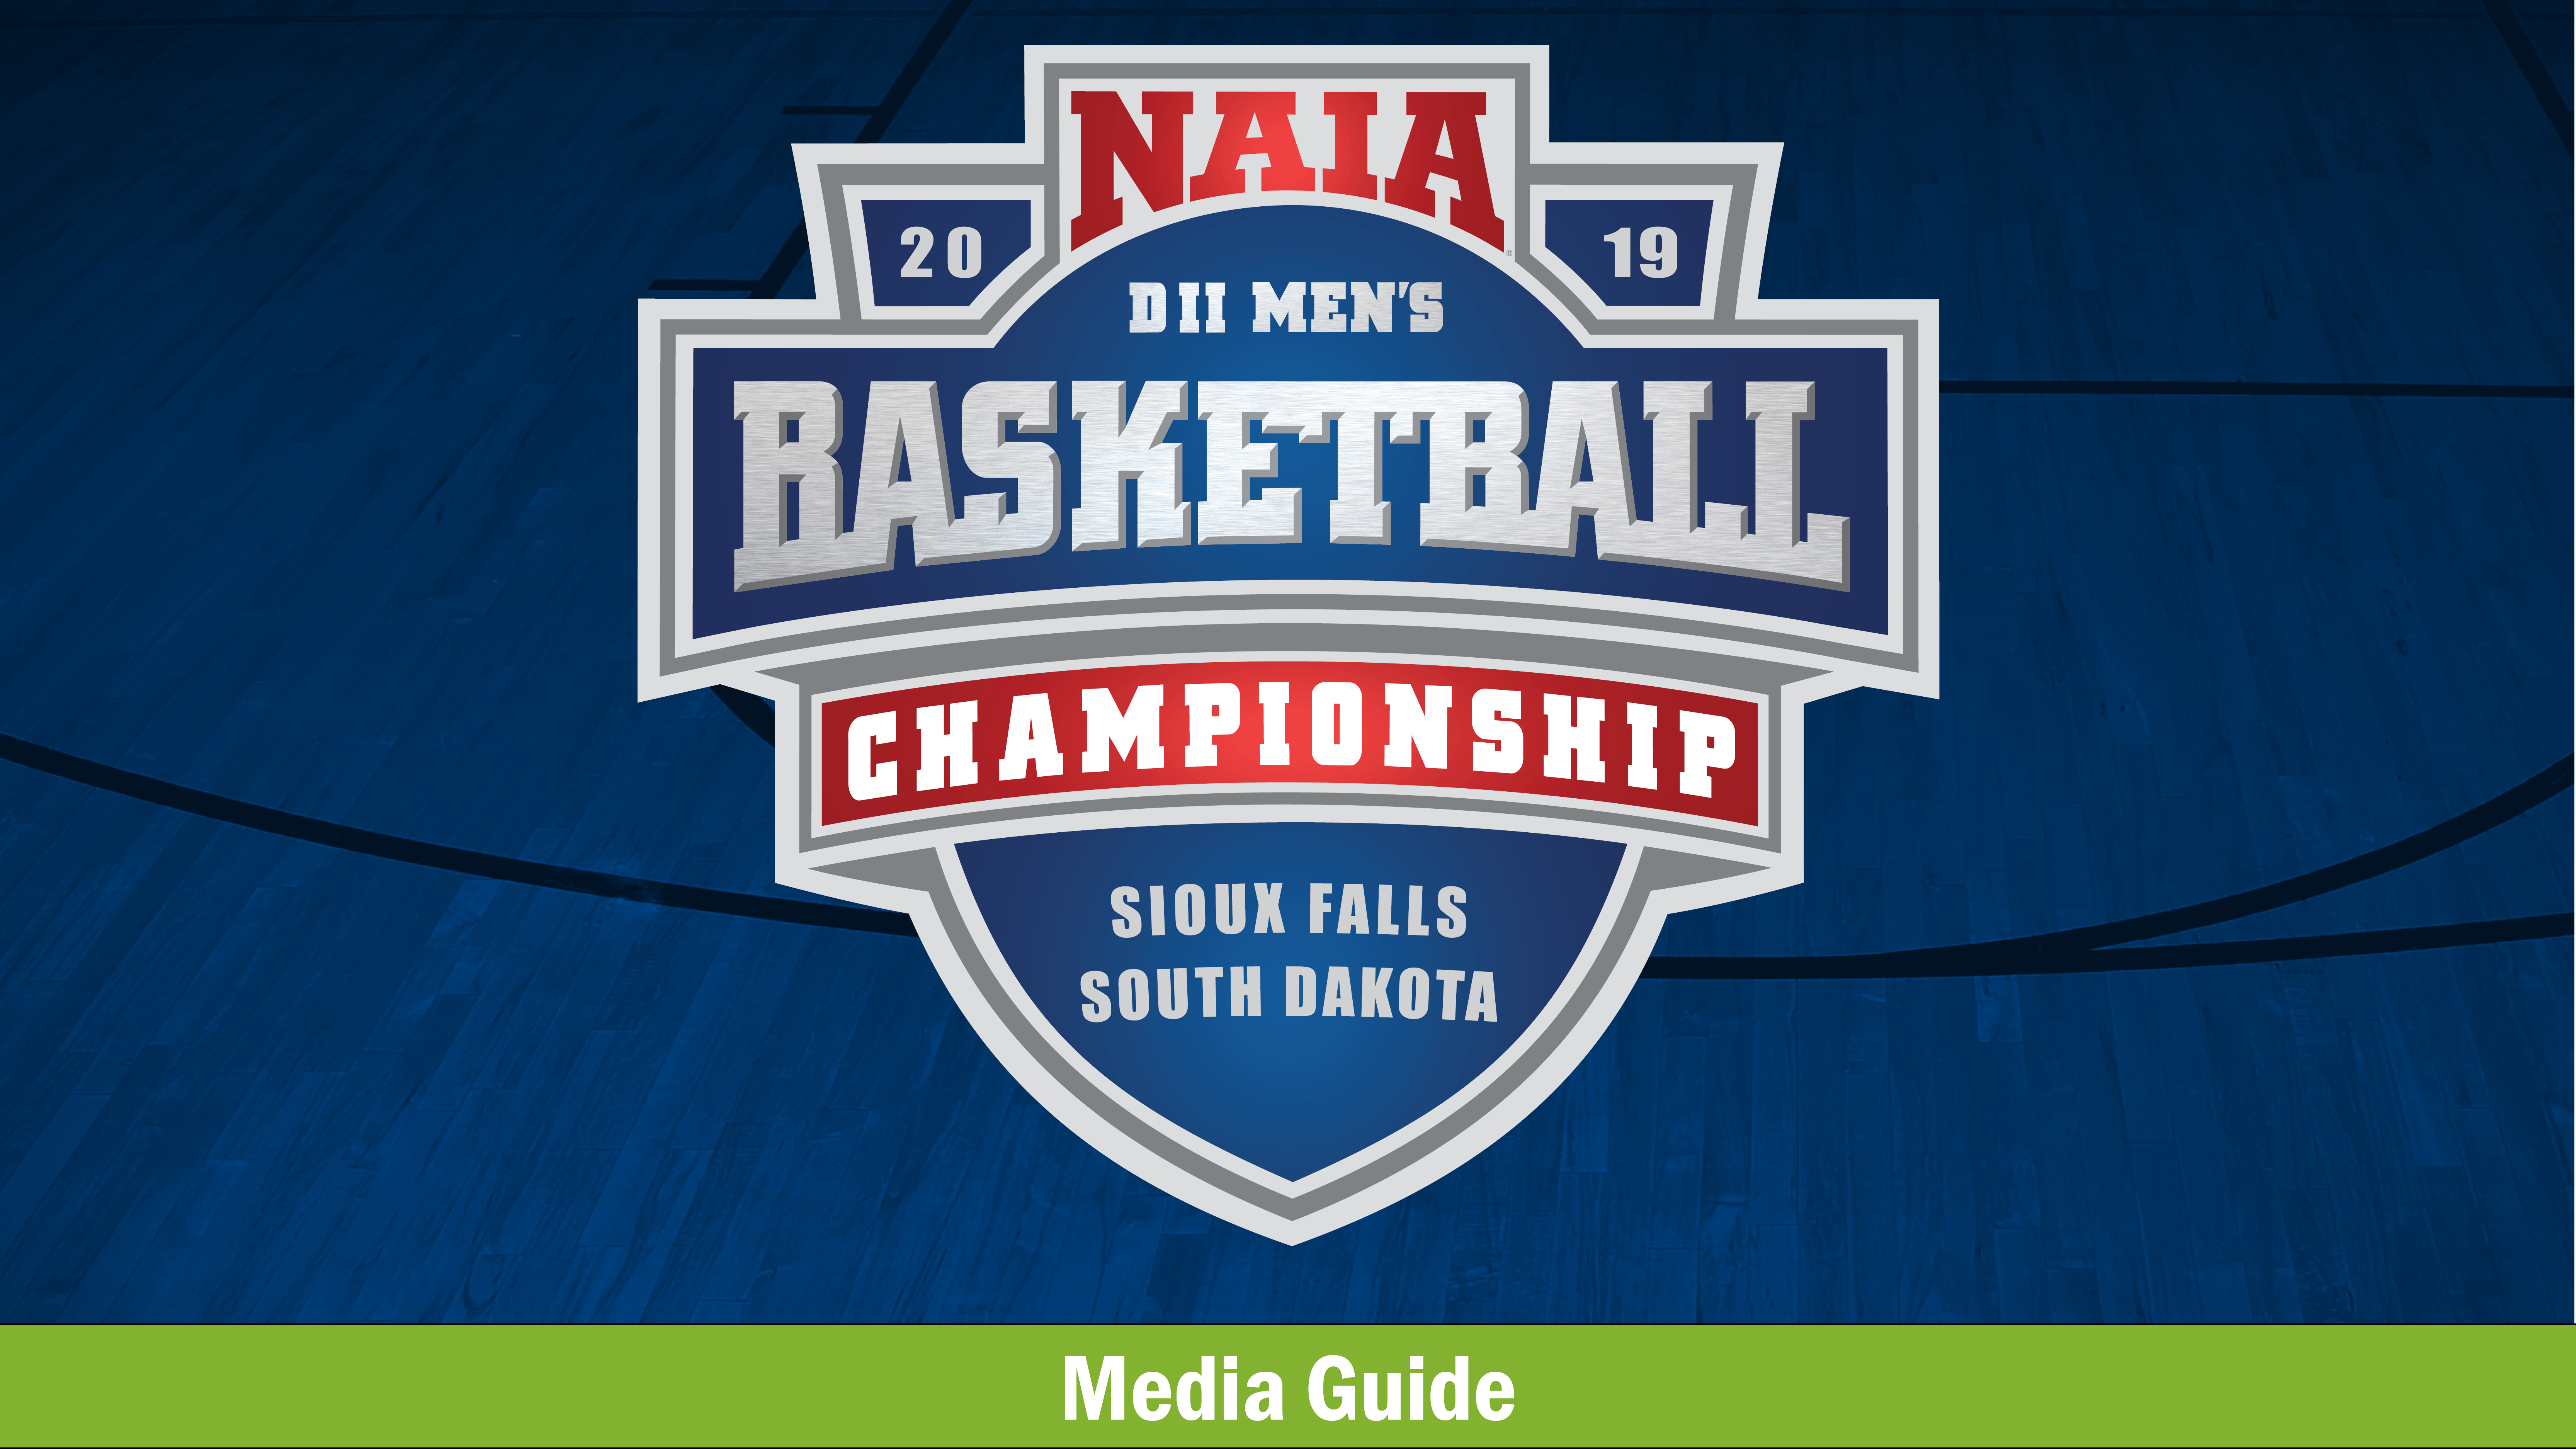 2019 Division II Men's Basketball National Championship Media Guide